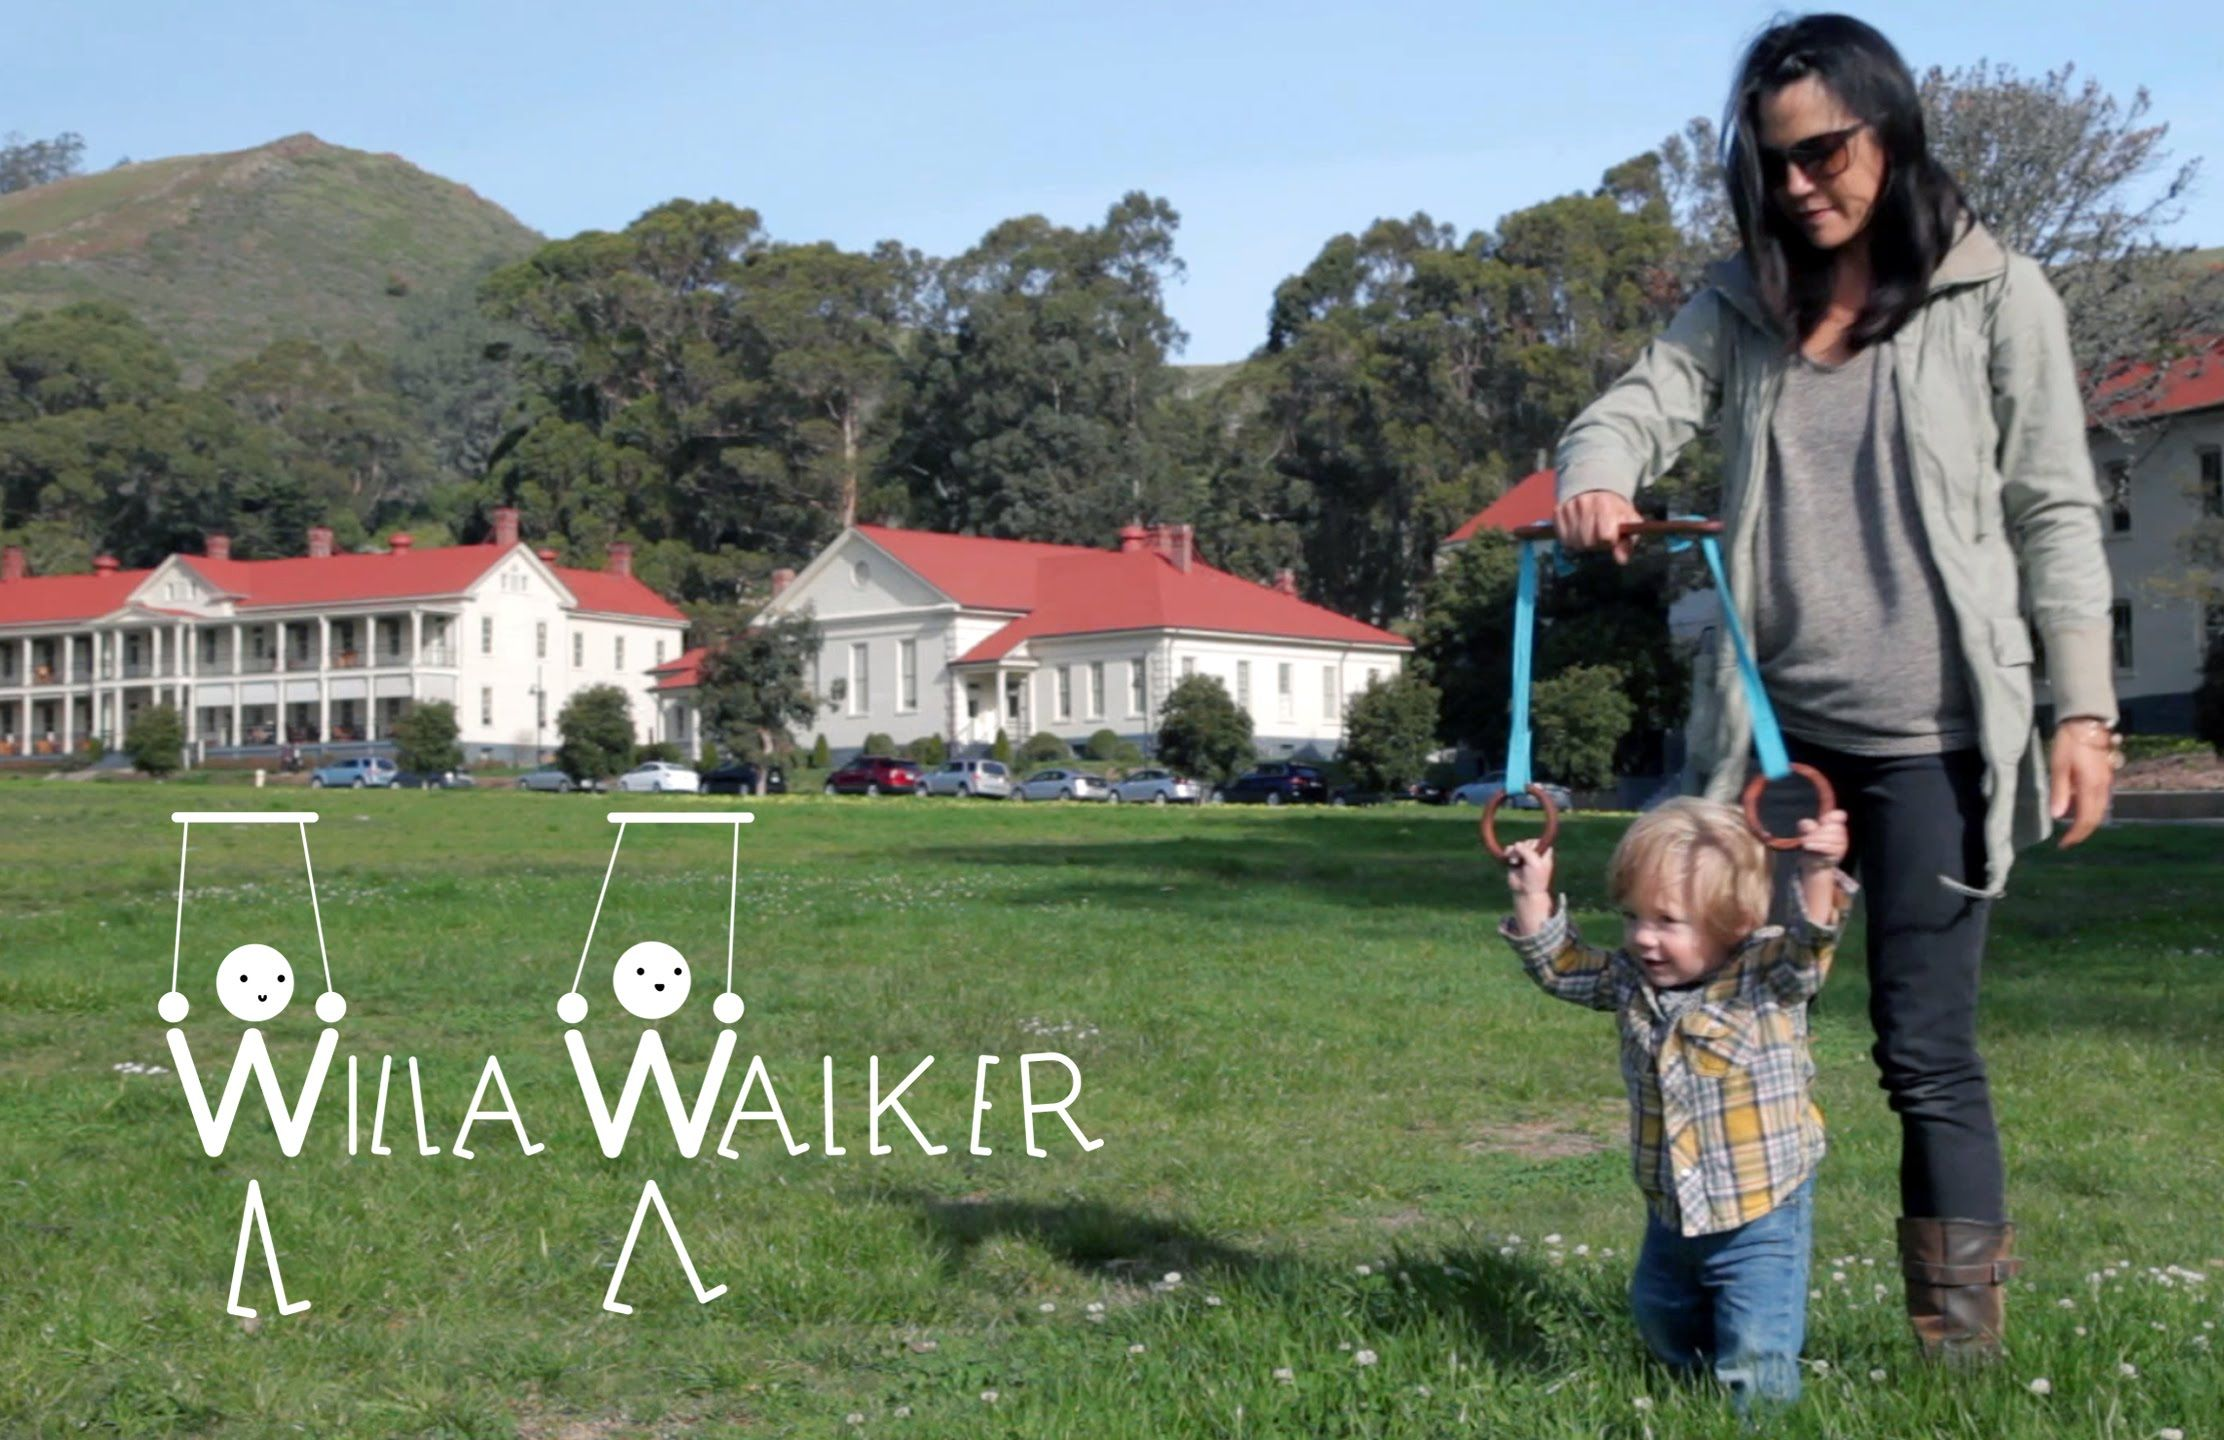 Willa Walker A playful tool for toddlers learning to walk